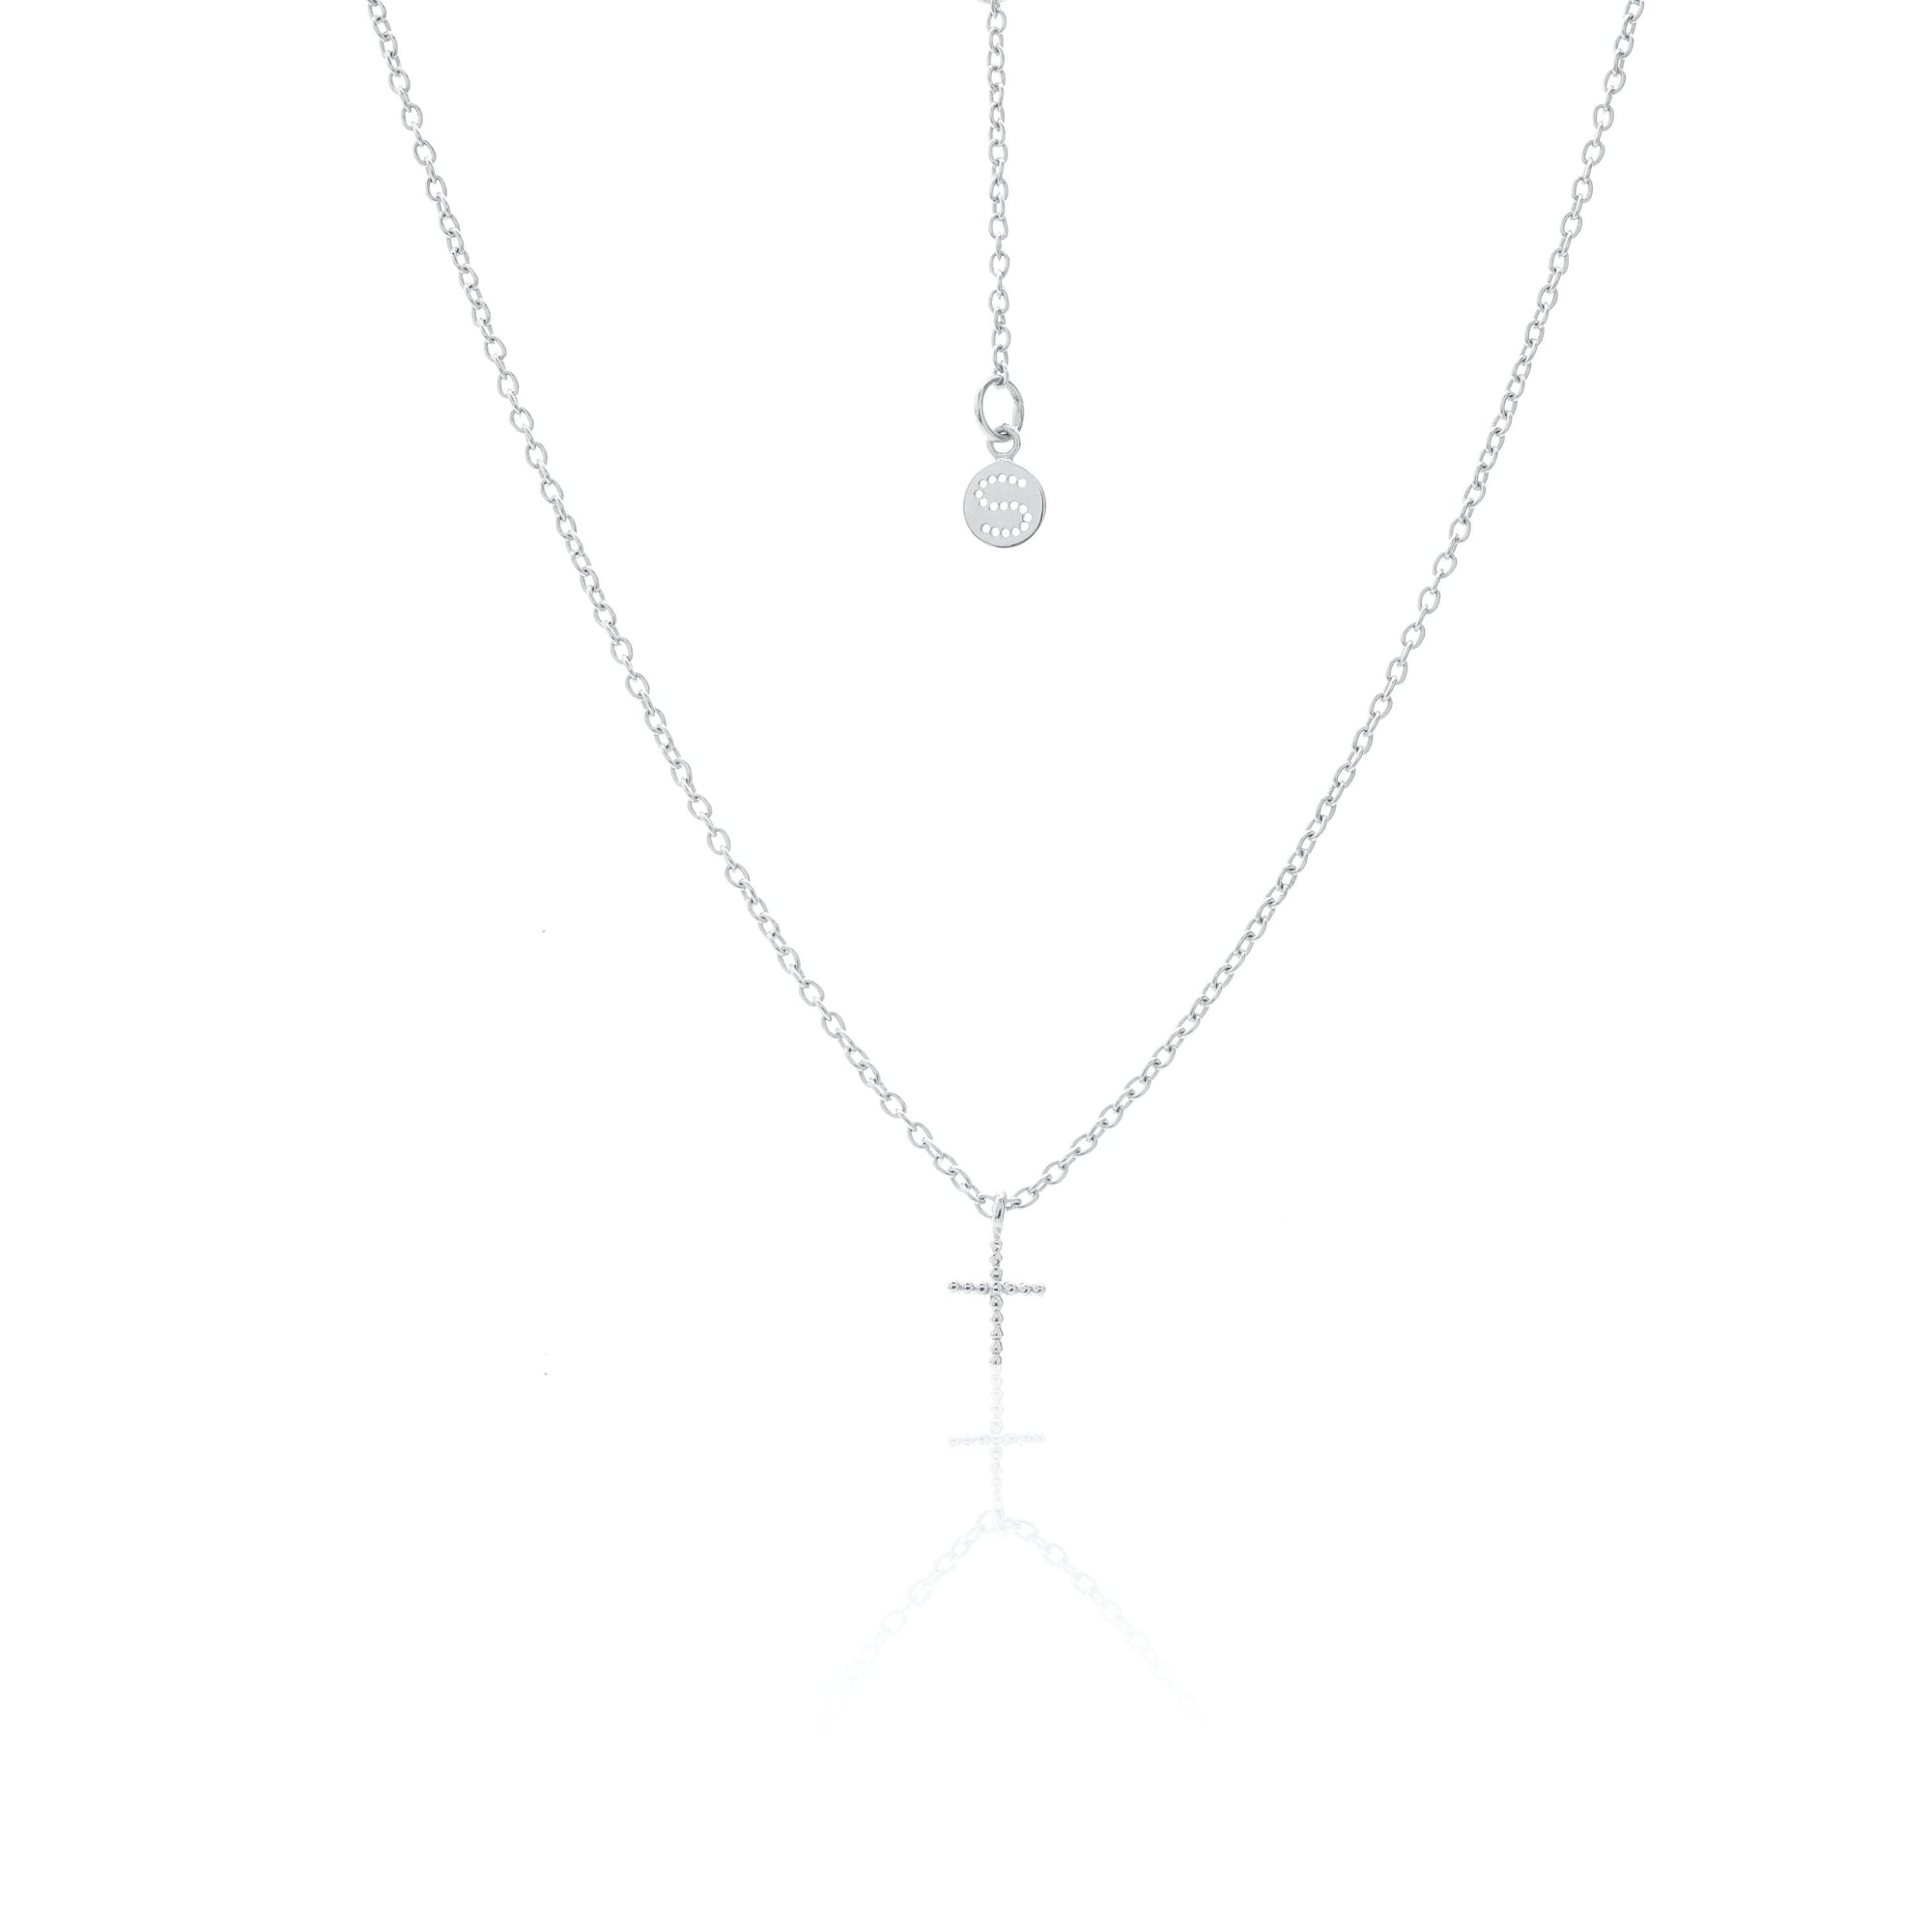 Silk & Steel Jewellery Superfine Cross Necklace Silver